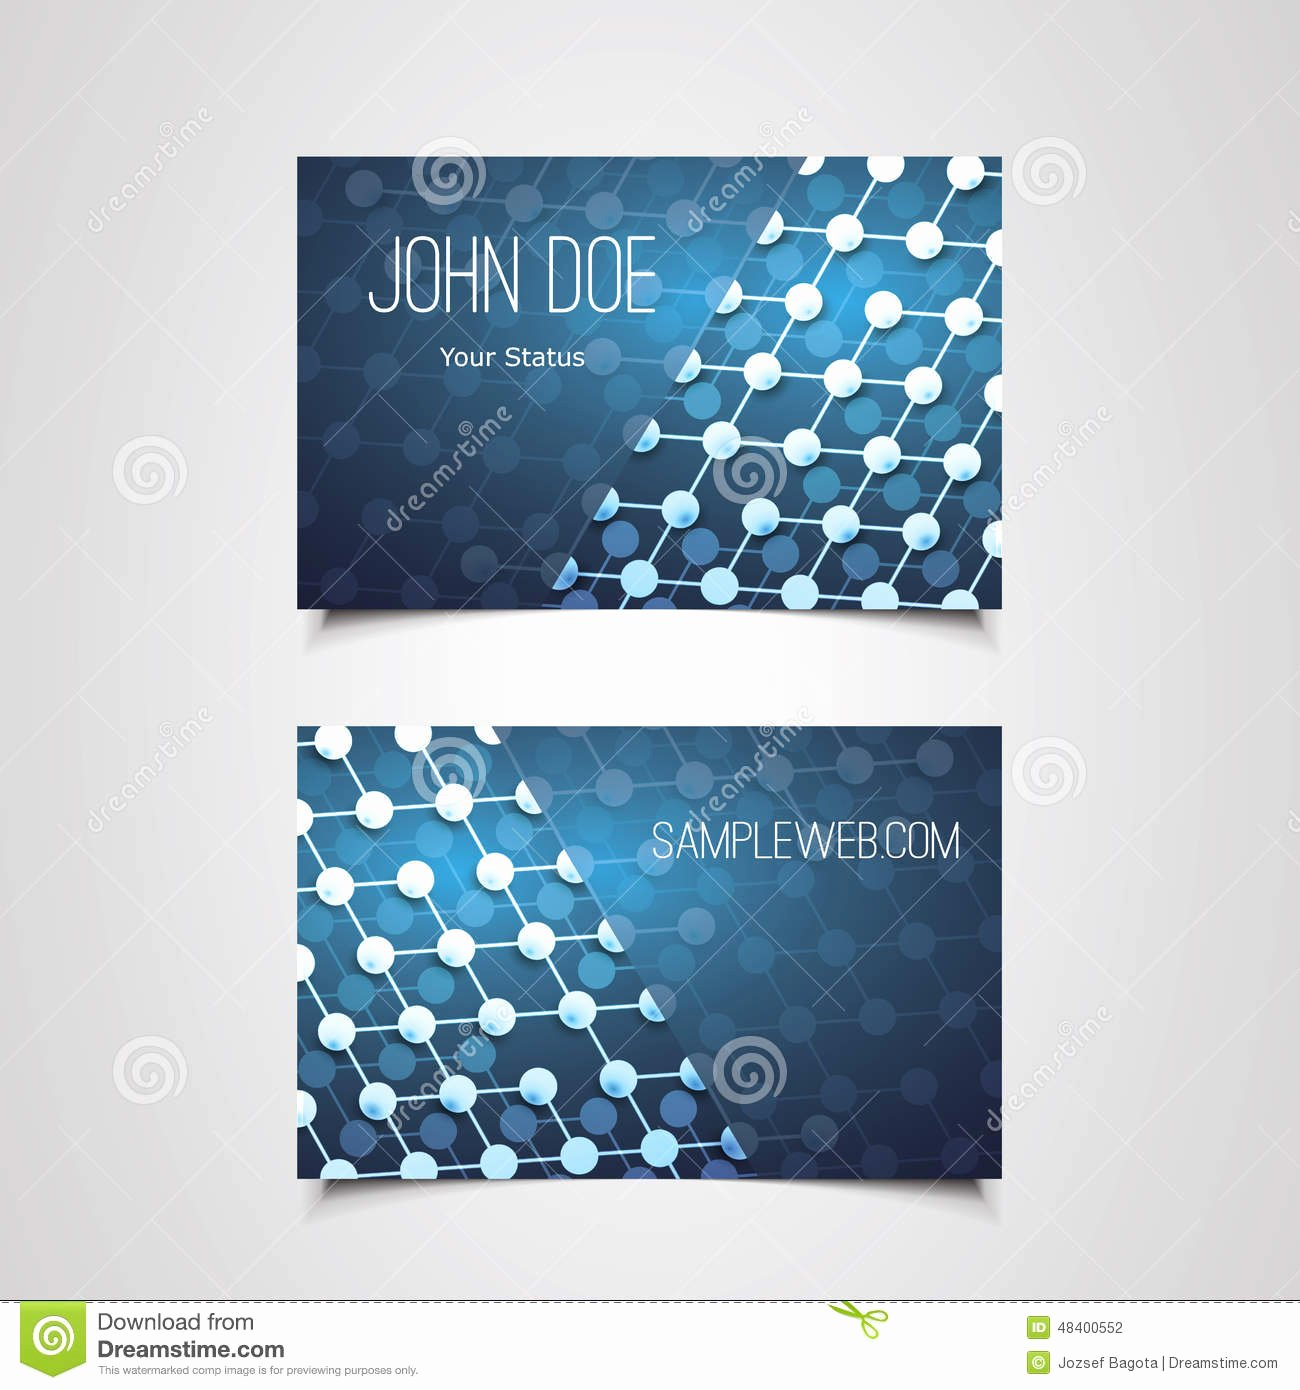 Networking Business Card Templates Business Card Design